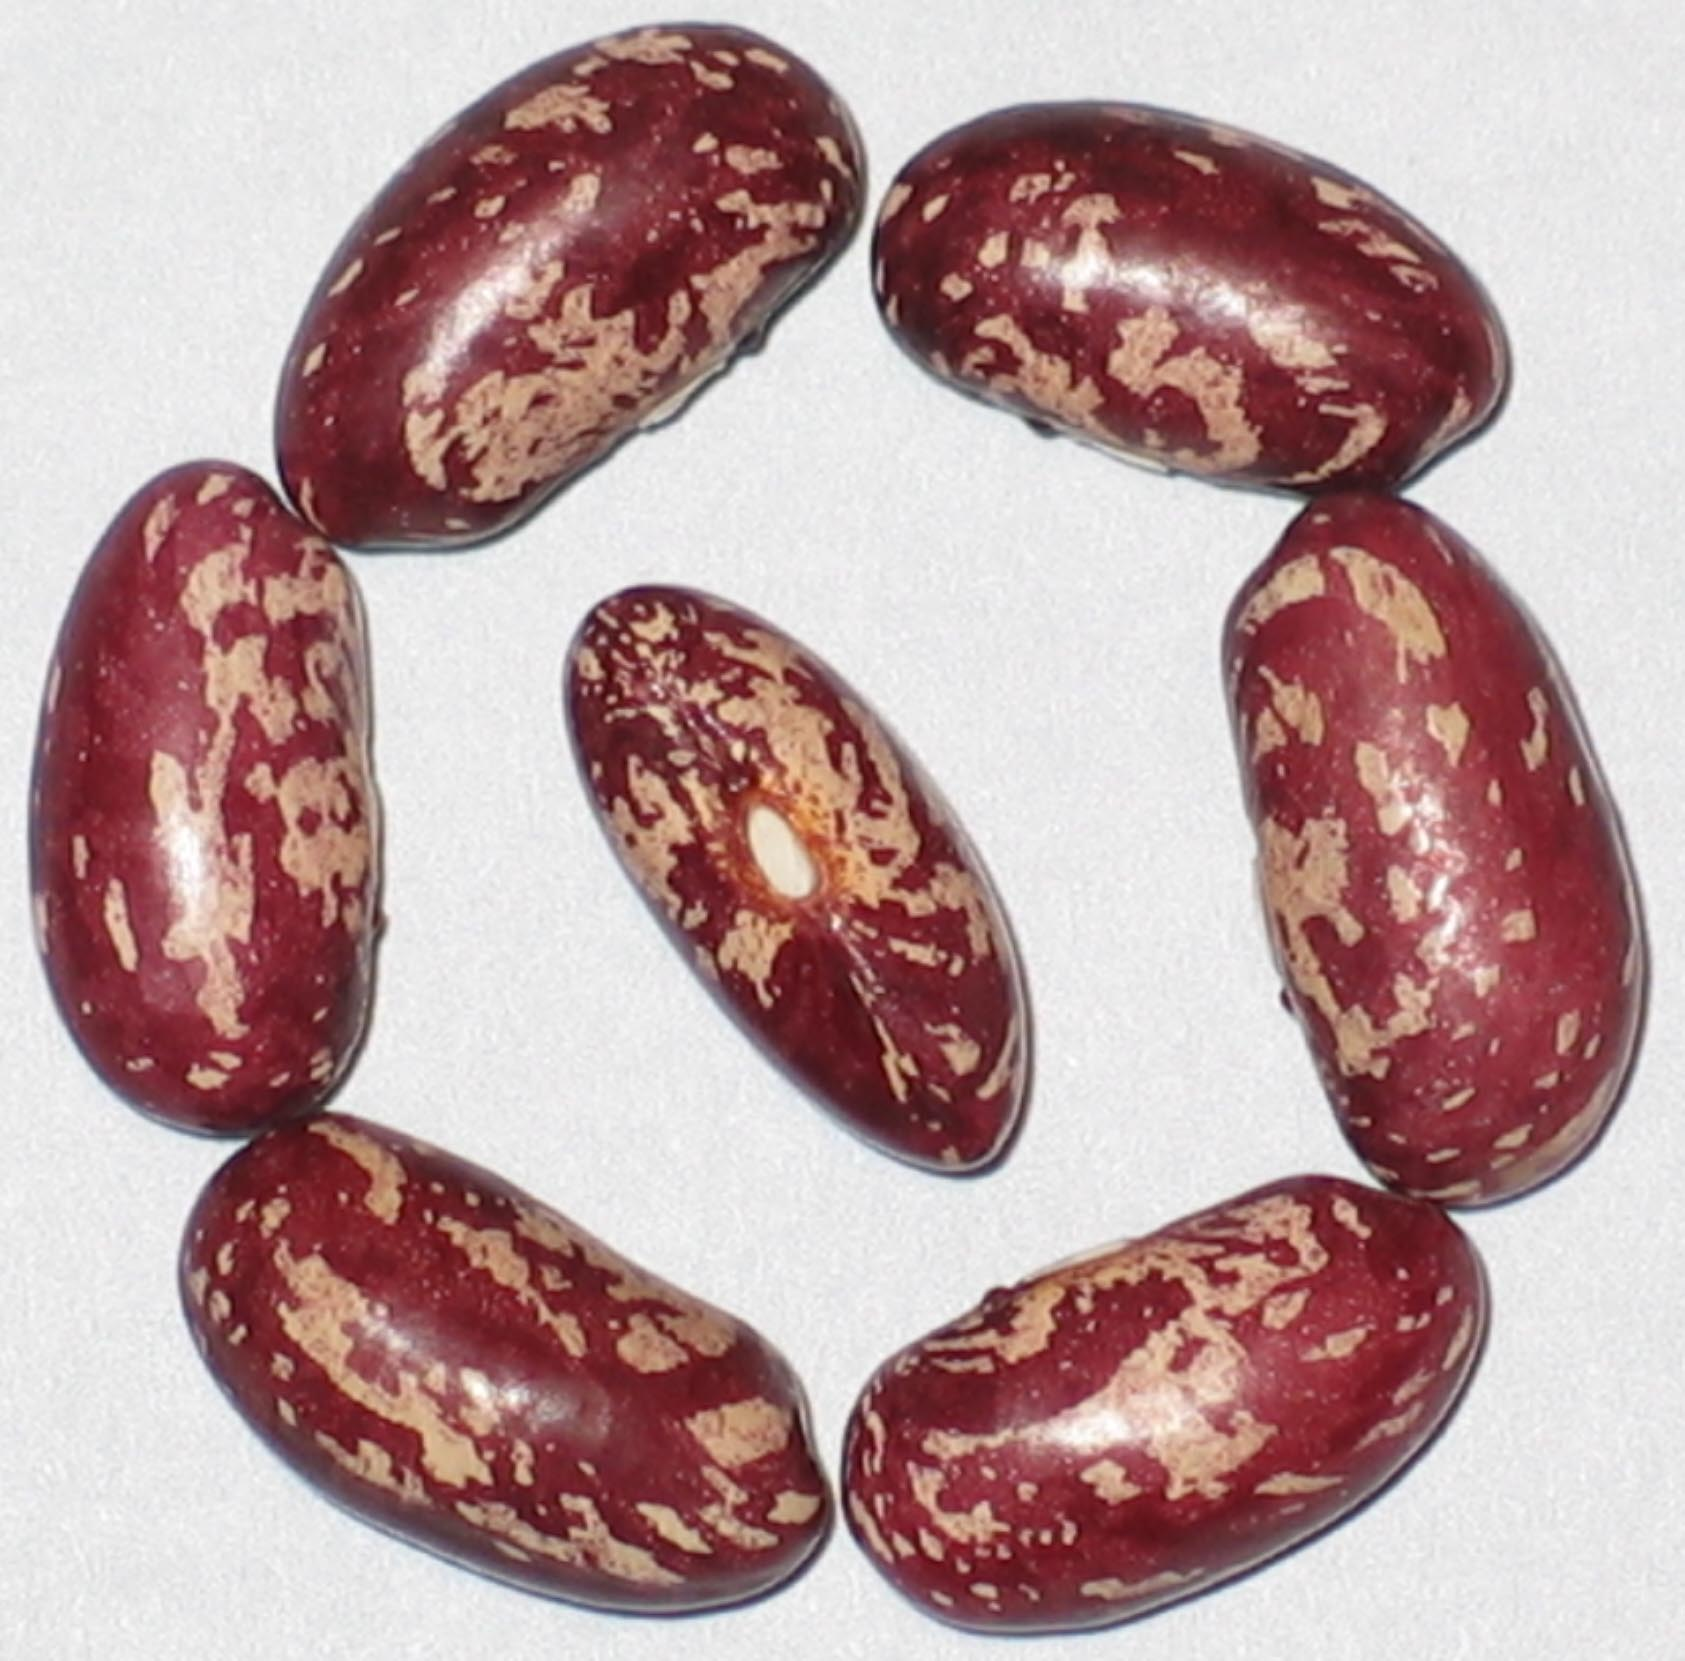 image of Gross Brothers Vermont Cranberry beans